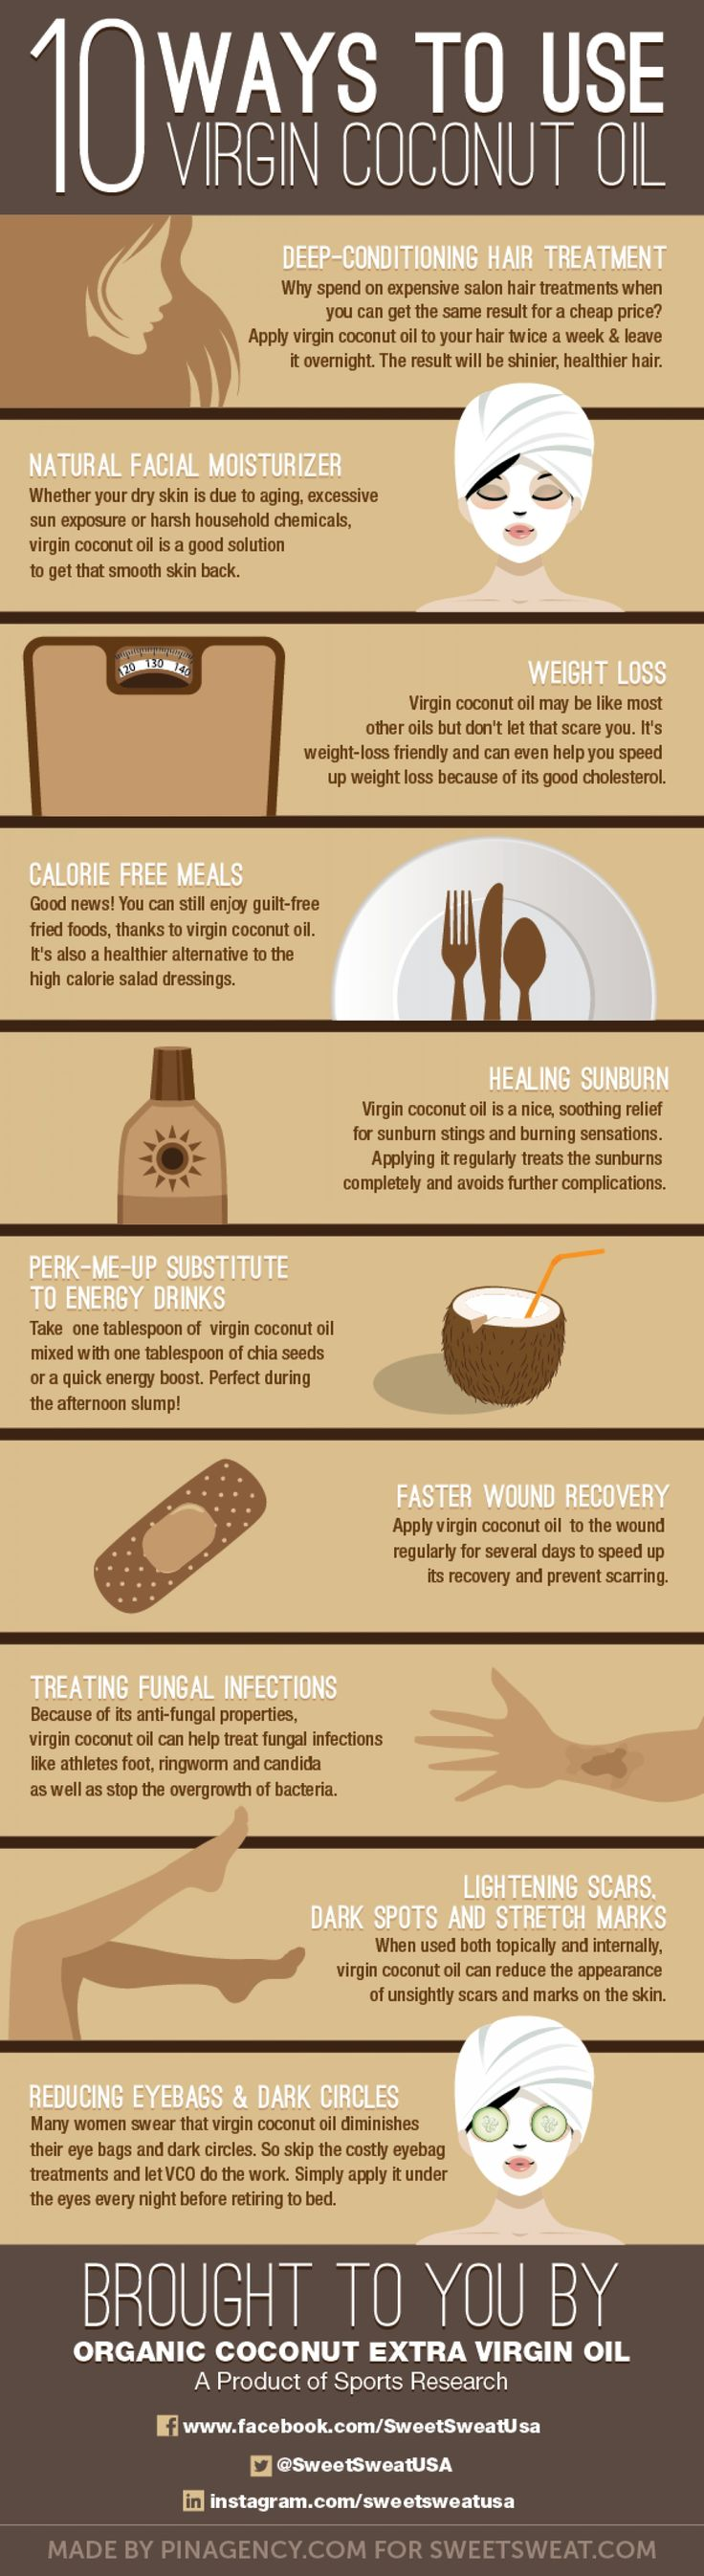 One of the most versatile natural remedies out there is Virgin coconut oil. It's packed with the nutrient-rich lauric acid which is responsible for several health benefits, ranging from skin care to weight loss. - See more at: http://visual.ly/10-ways-use-virgin-coconut-oil#sthash.uhAg2oGk.dpuf